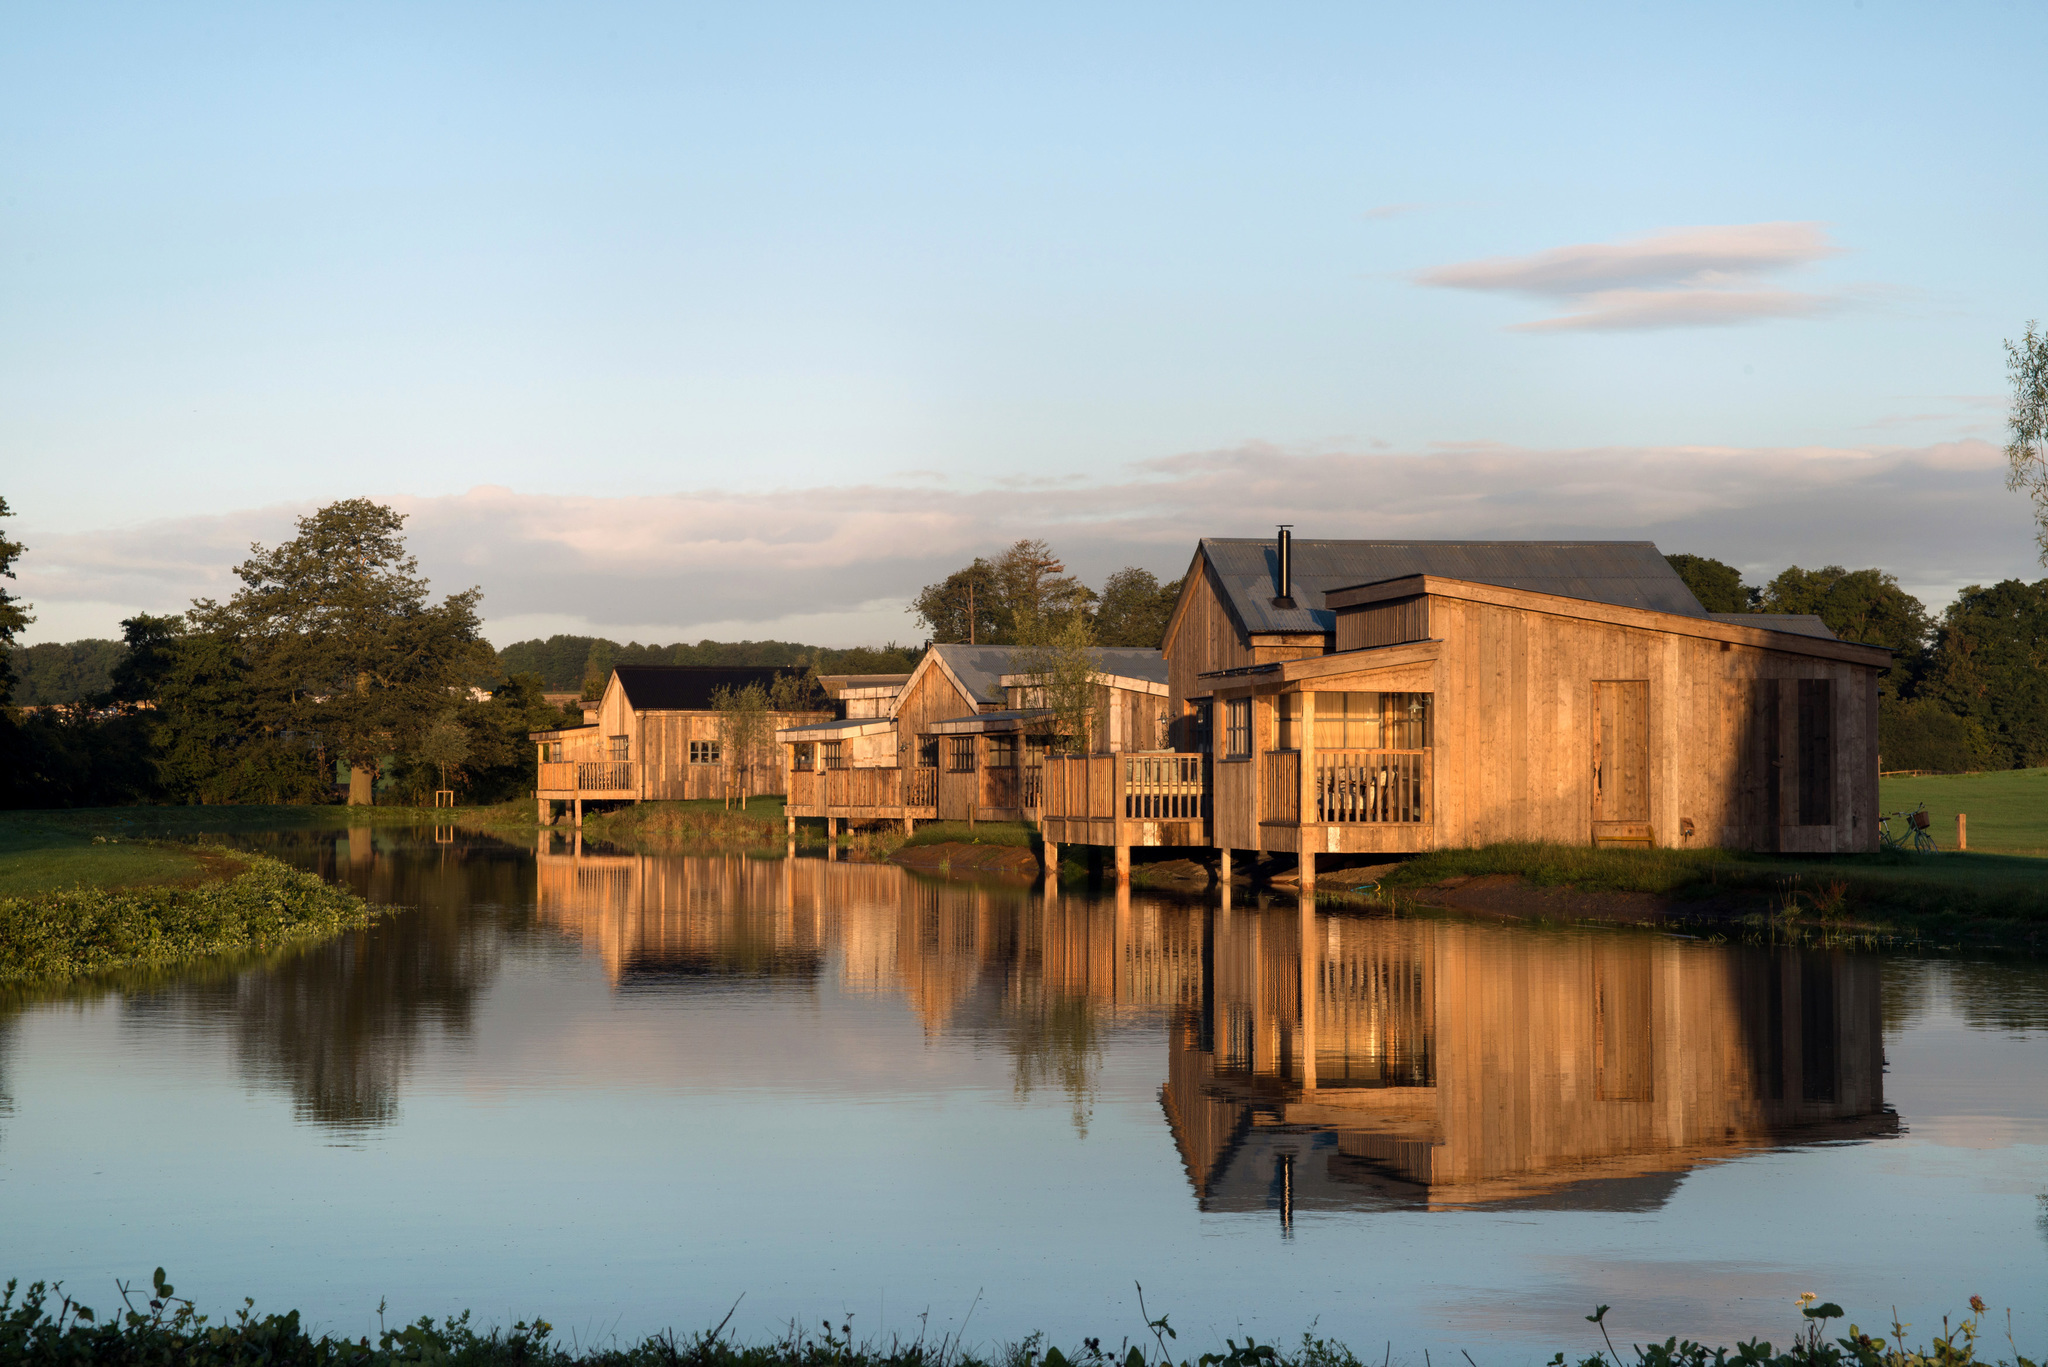 Holiday cabins such as these at Soho Farmhouse, Oxfordshire, could be built near Auchterarder.